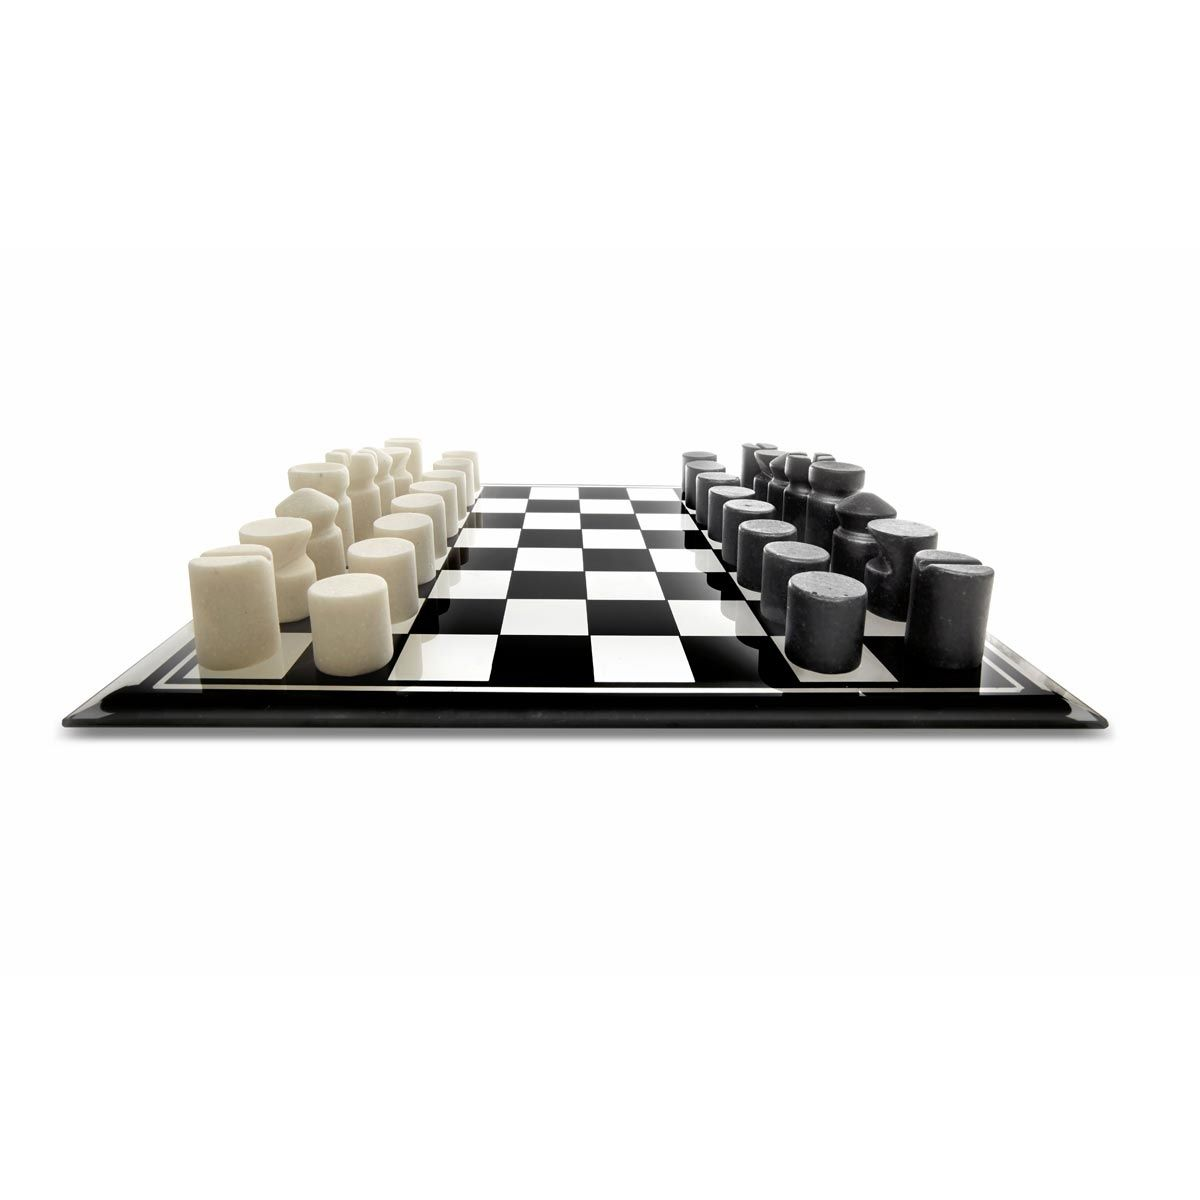 Decorative Chess Sets Decorative Chess Set  Kmart  B&b Ideas  Pinterest  Chess Sets